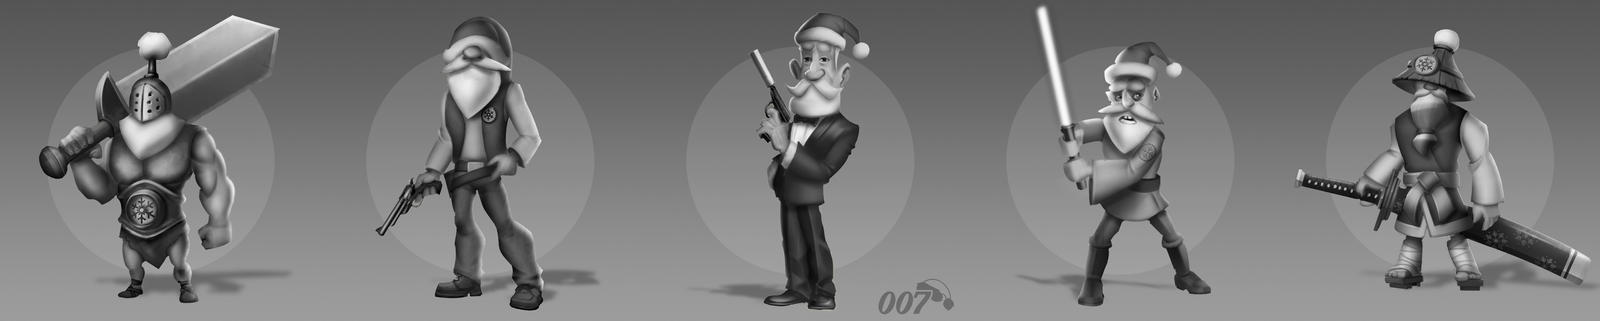 Santa Claus character design by airdolphin